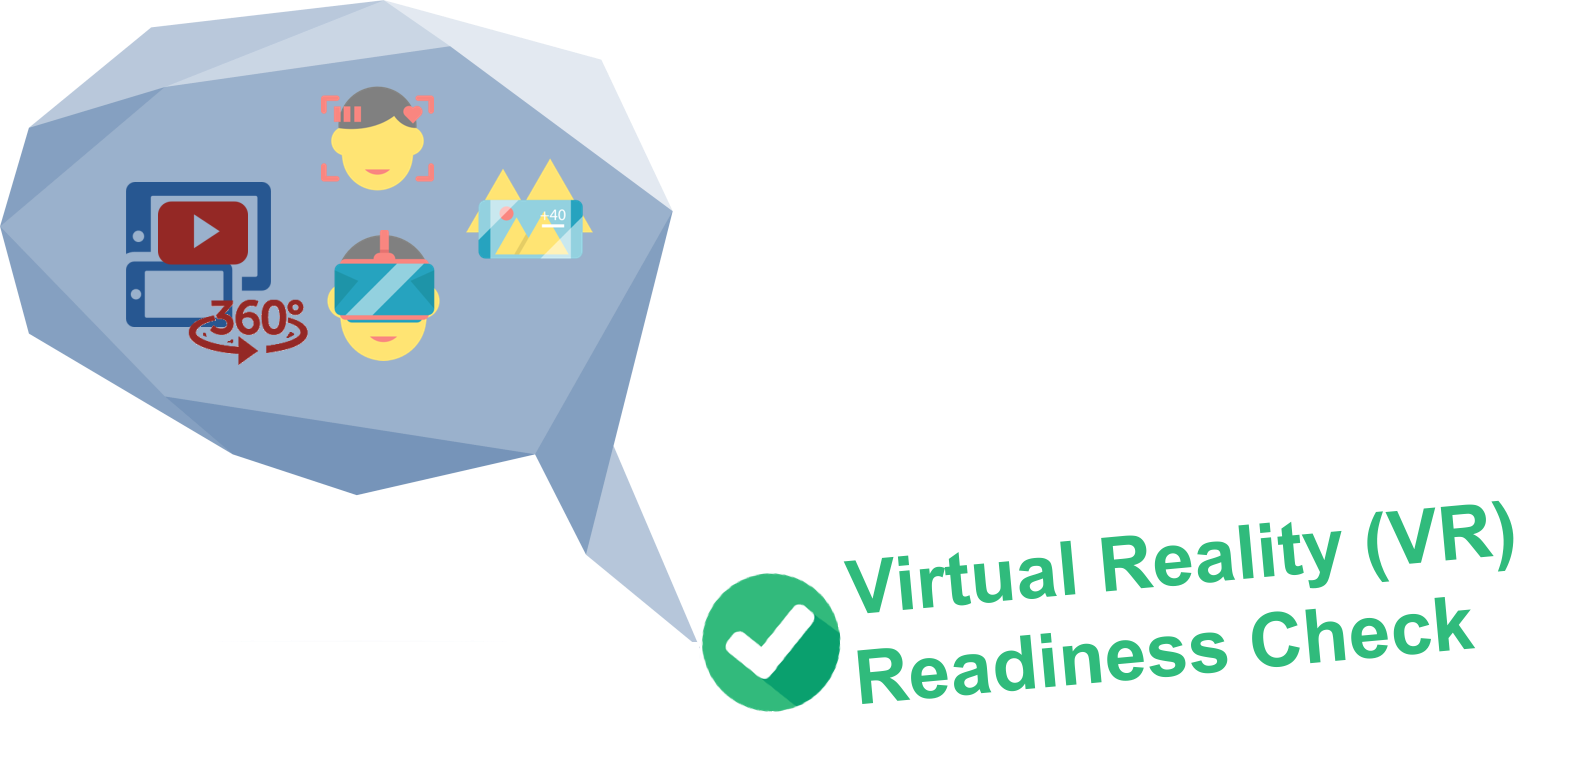 https://www.torstenfell.com/academy/wp-content/uploads/2017/04/readiness_check_vr.png